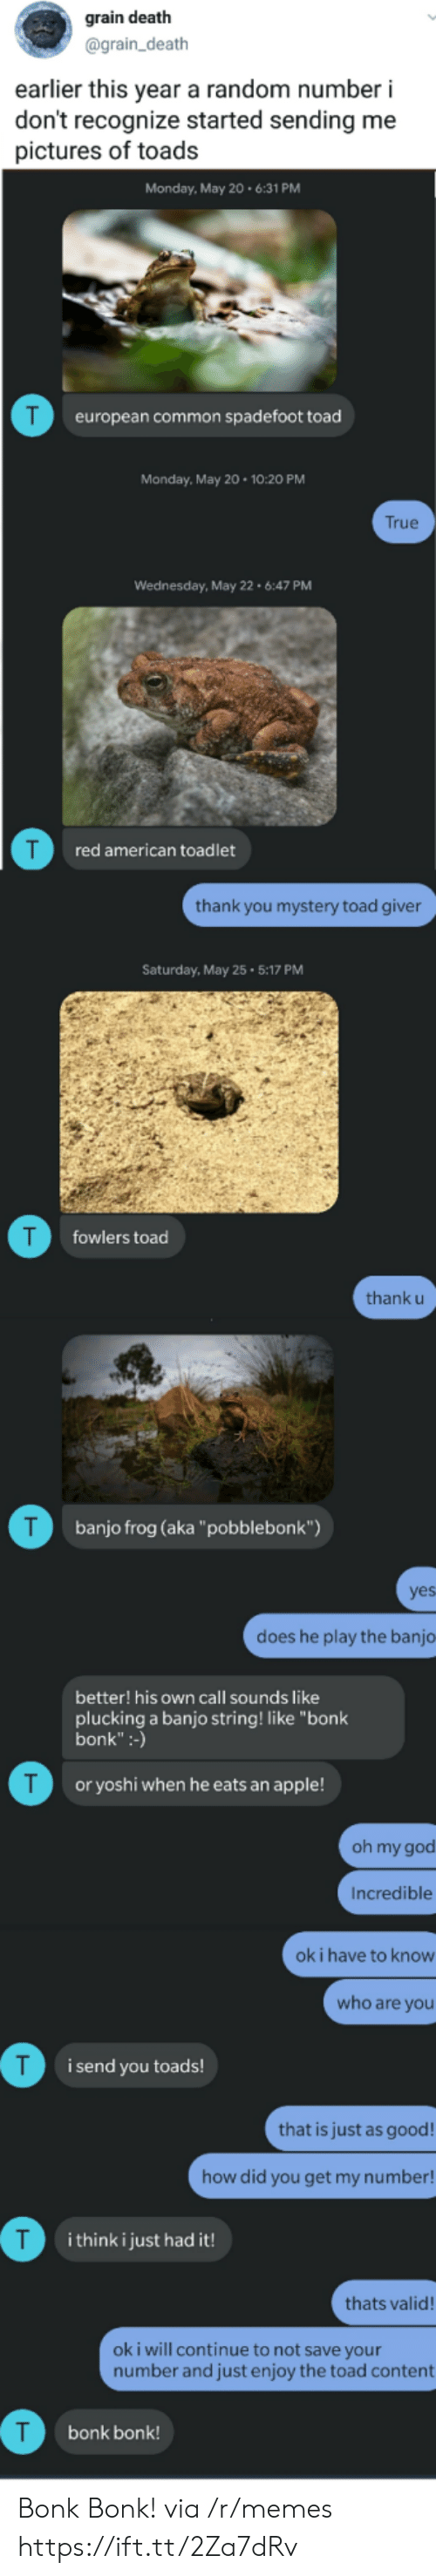 """Thank U: grain death  @grain_death  earlier this year a random number i  don't recognize started sending me  pictures of toads  Monday, May 20.6:31 PM  T  european common spadefoot toad  Monday, May 20 10:20 PM  True  Wednesday, May 22 6:47 PM  red american toadlet  thank you mystery toad giver  Saturday, May 25 5:17 PM  T  fowlers toad  thank u  T  banjo frog (aka""""pobblebonk"""")  yes  does he play the banjo  better! his own call sounds like  plucking a banjo string! like """"bonk  bonk"""":-)  T  or yoshi when he eats an apple!  oh my god  Incredible  ok i have to know  who are you  i send you toads!  that is just as good!  how did you get my number!  T  i think i just had it!  thats valid!  oki will continue to not save your  number and just enjoy the toad content  bonk bonk! Bonk Bonk! via /r/memes https://ift.tt/2Za7dRv"""